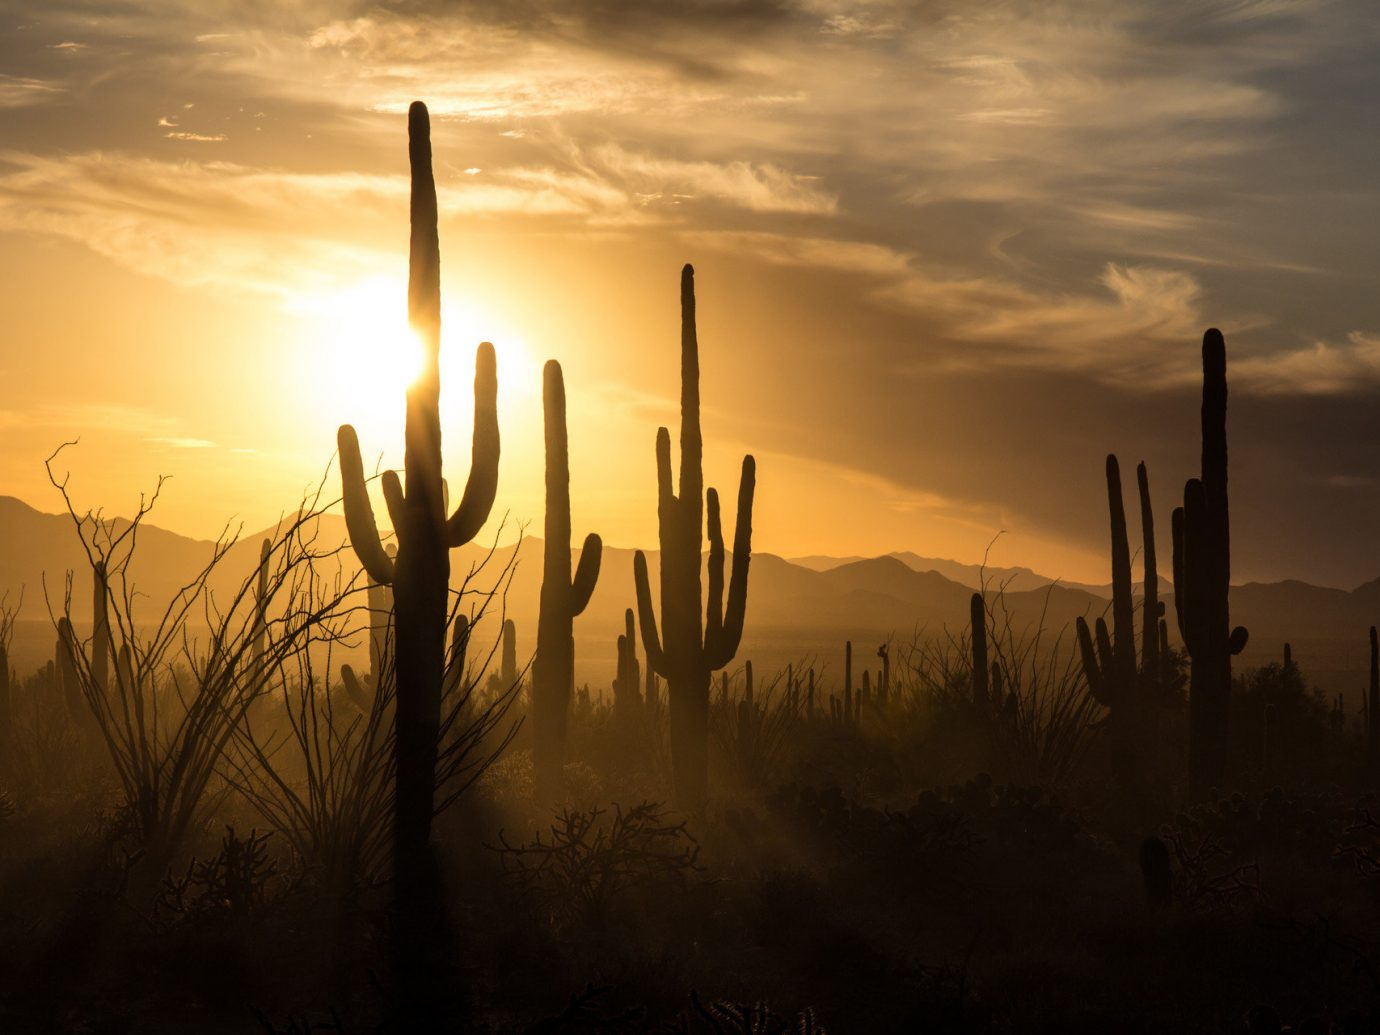 Trip Ideas sky outdoor Sunset plant Sun traffic cactus light Nature sunrise atmospheric phenomenon clouds cloud dawn horizon morning atmosphere setting evening sunlight dusk reflection cloudy mist day